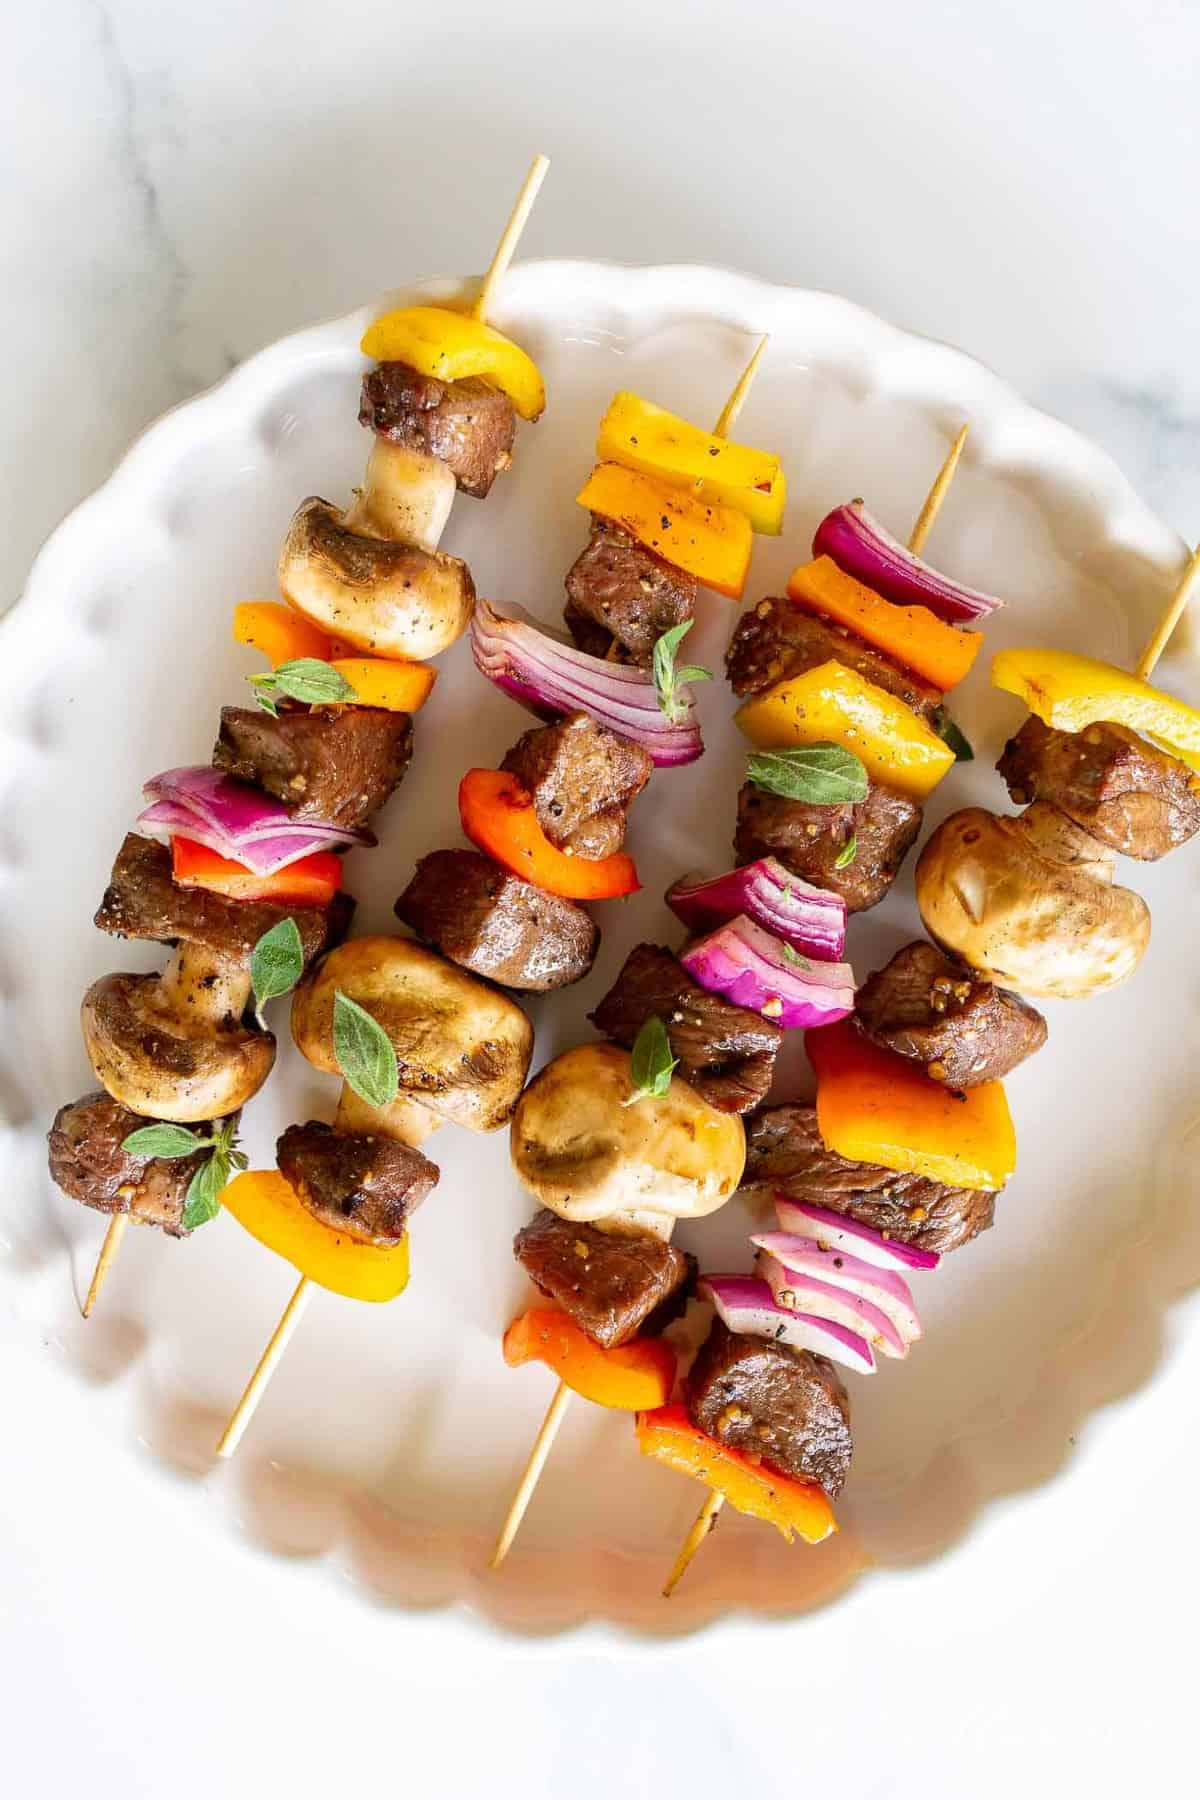 Learn the keys to the most delicious steak kabobs on the grill! This steak kabob marinade is bursting with bold, healthy flavor in every bite. In fact, we tend to use our favorite steak for kabobs instead of traditional grilled steak - it's just so good this way!